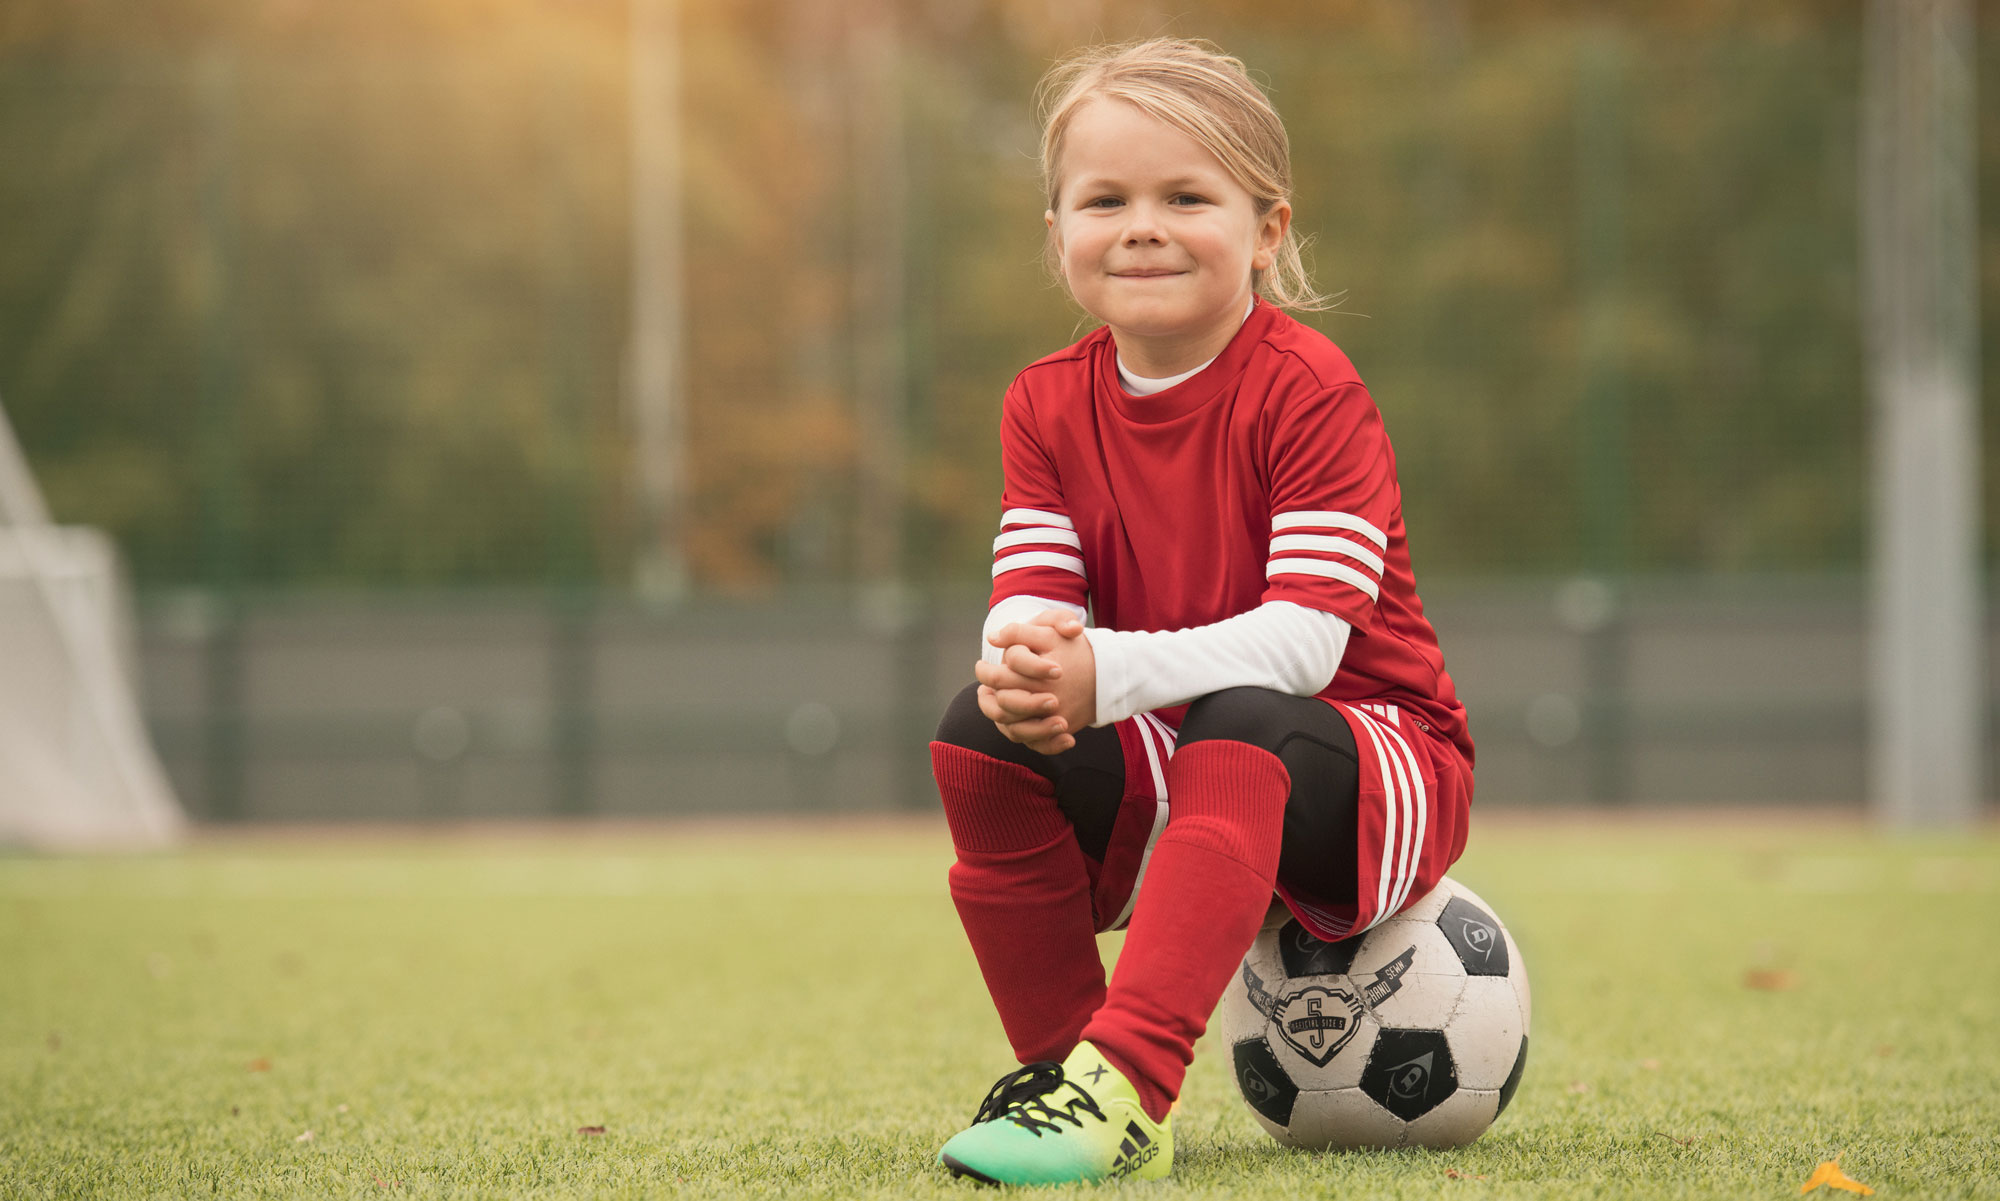 Child sitting on a football